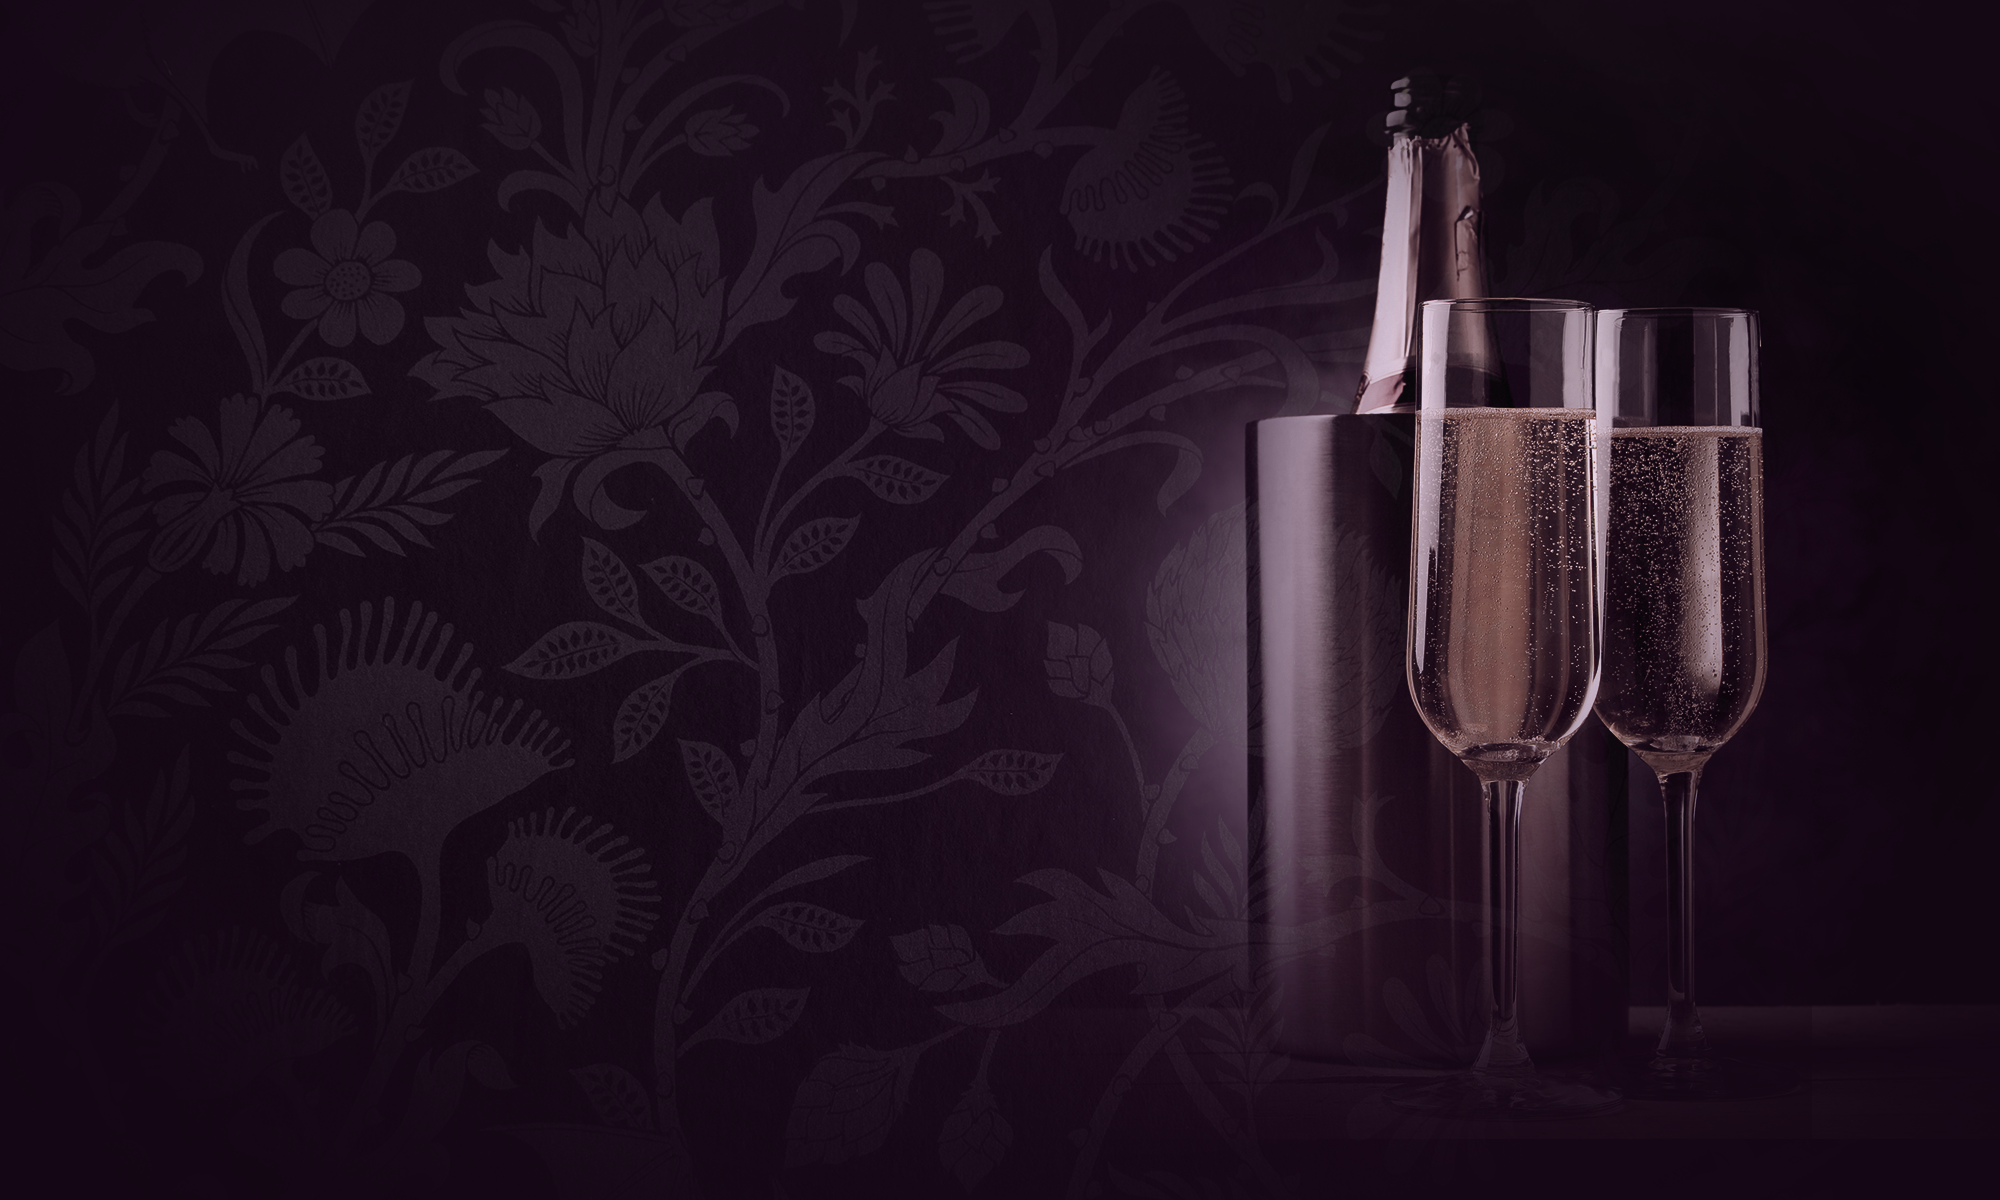 art of wine and champagn